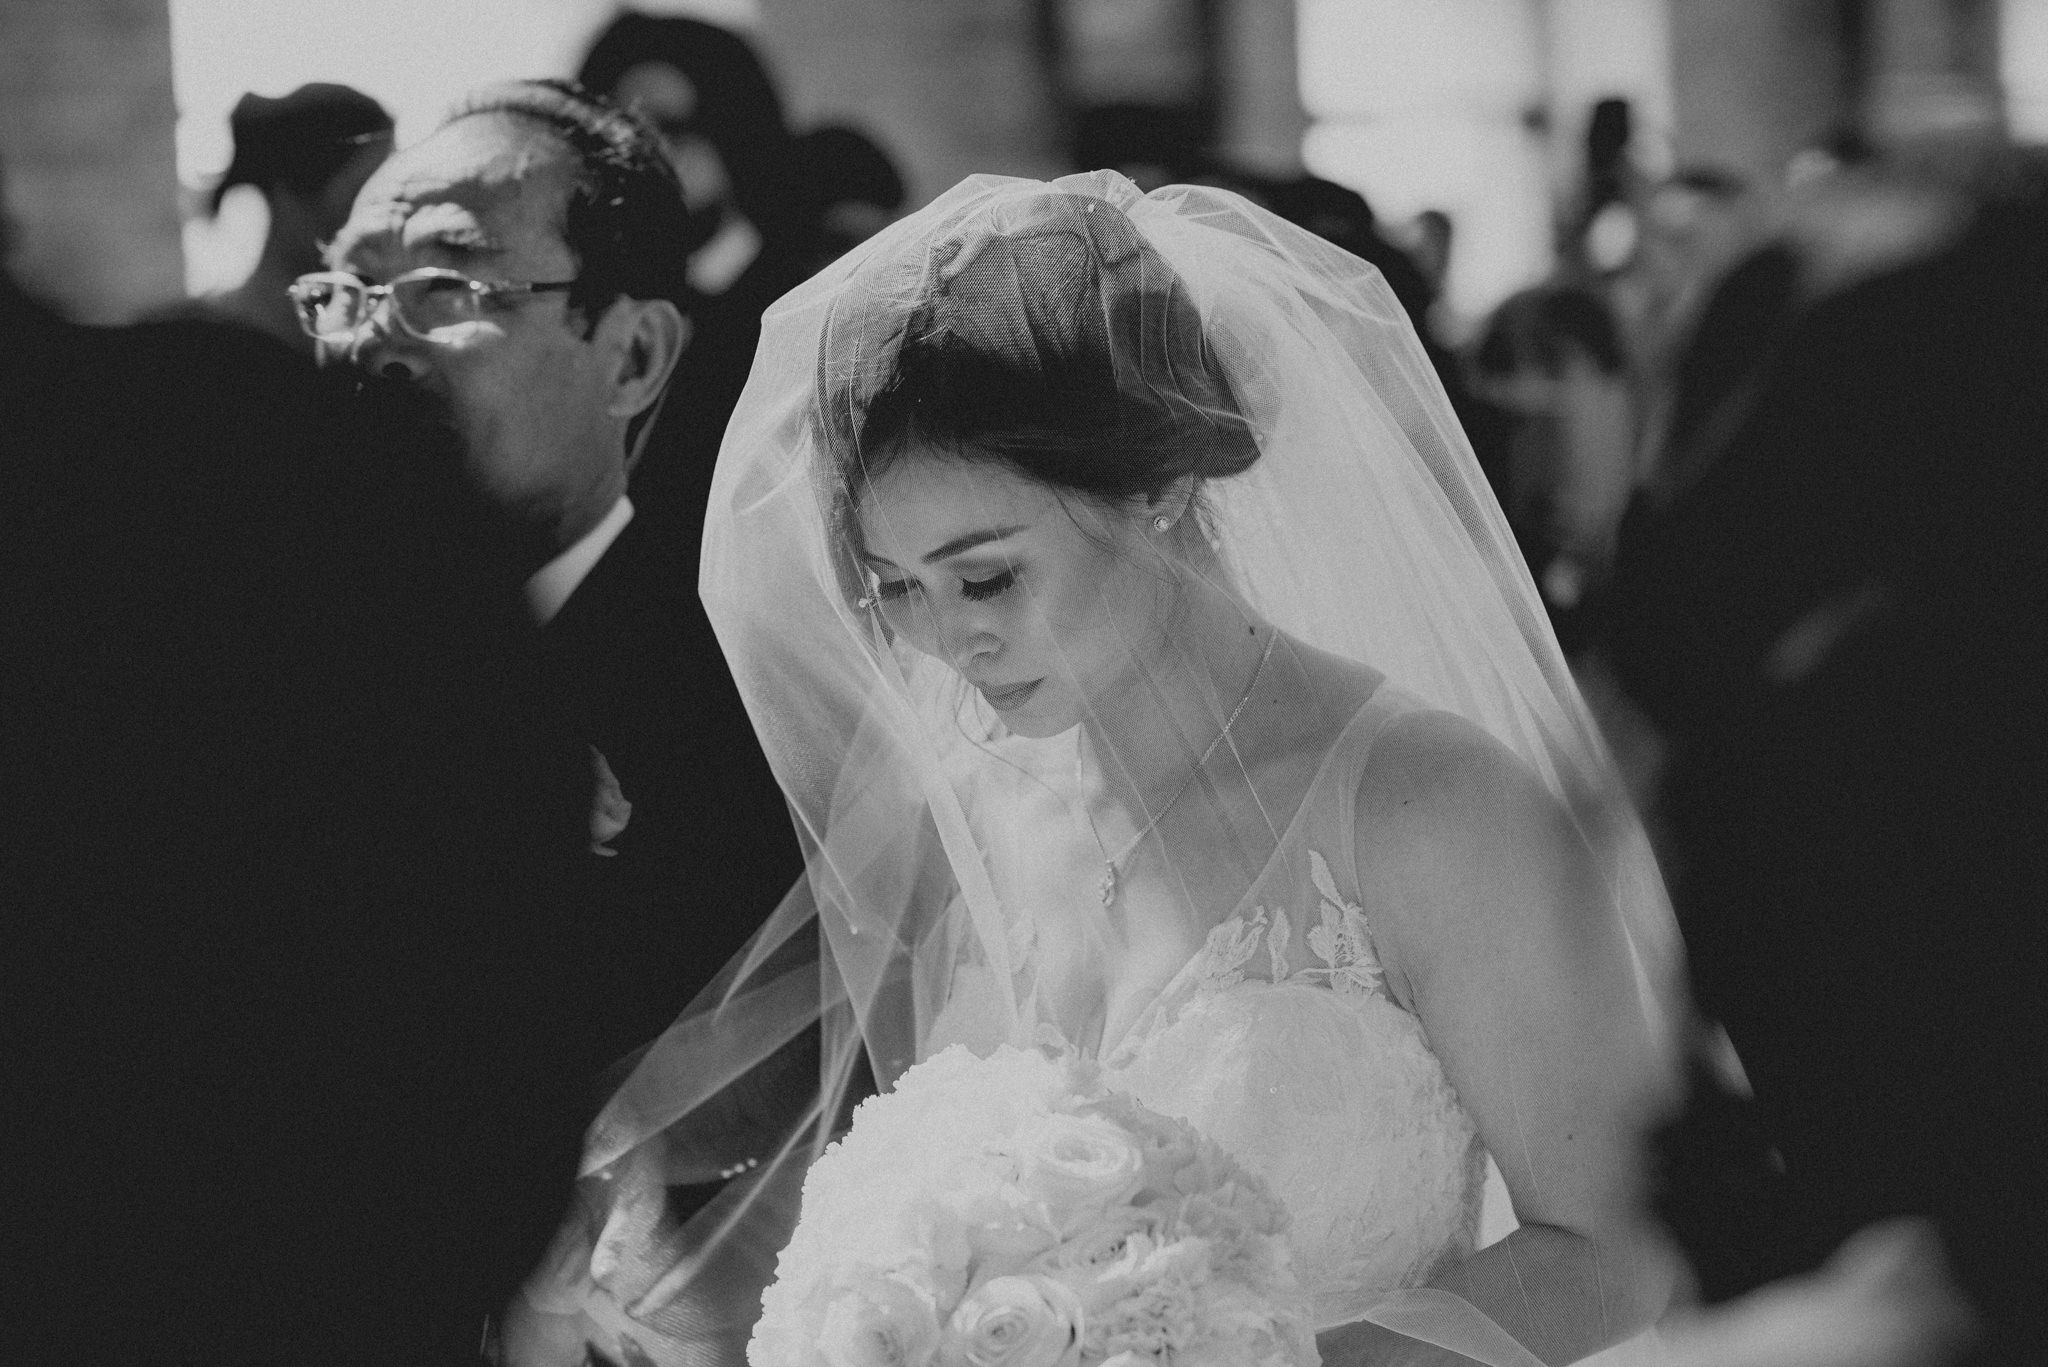 Asian bride walks down the aisle at her wedding covered by a veil